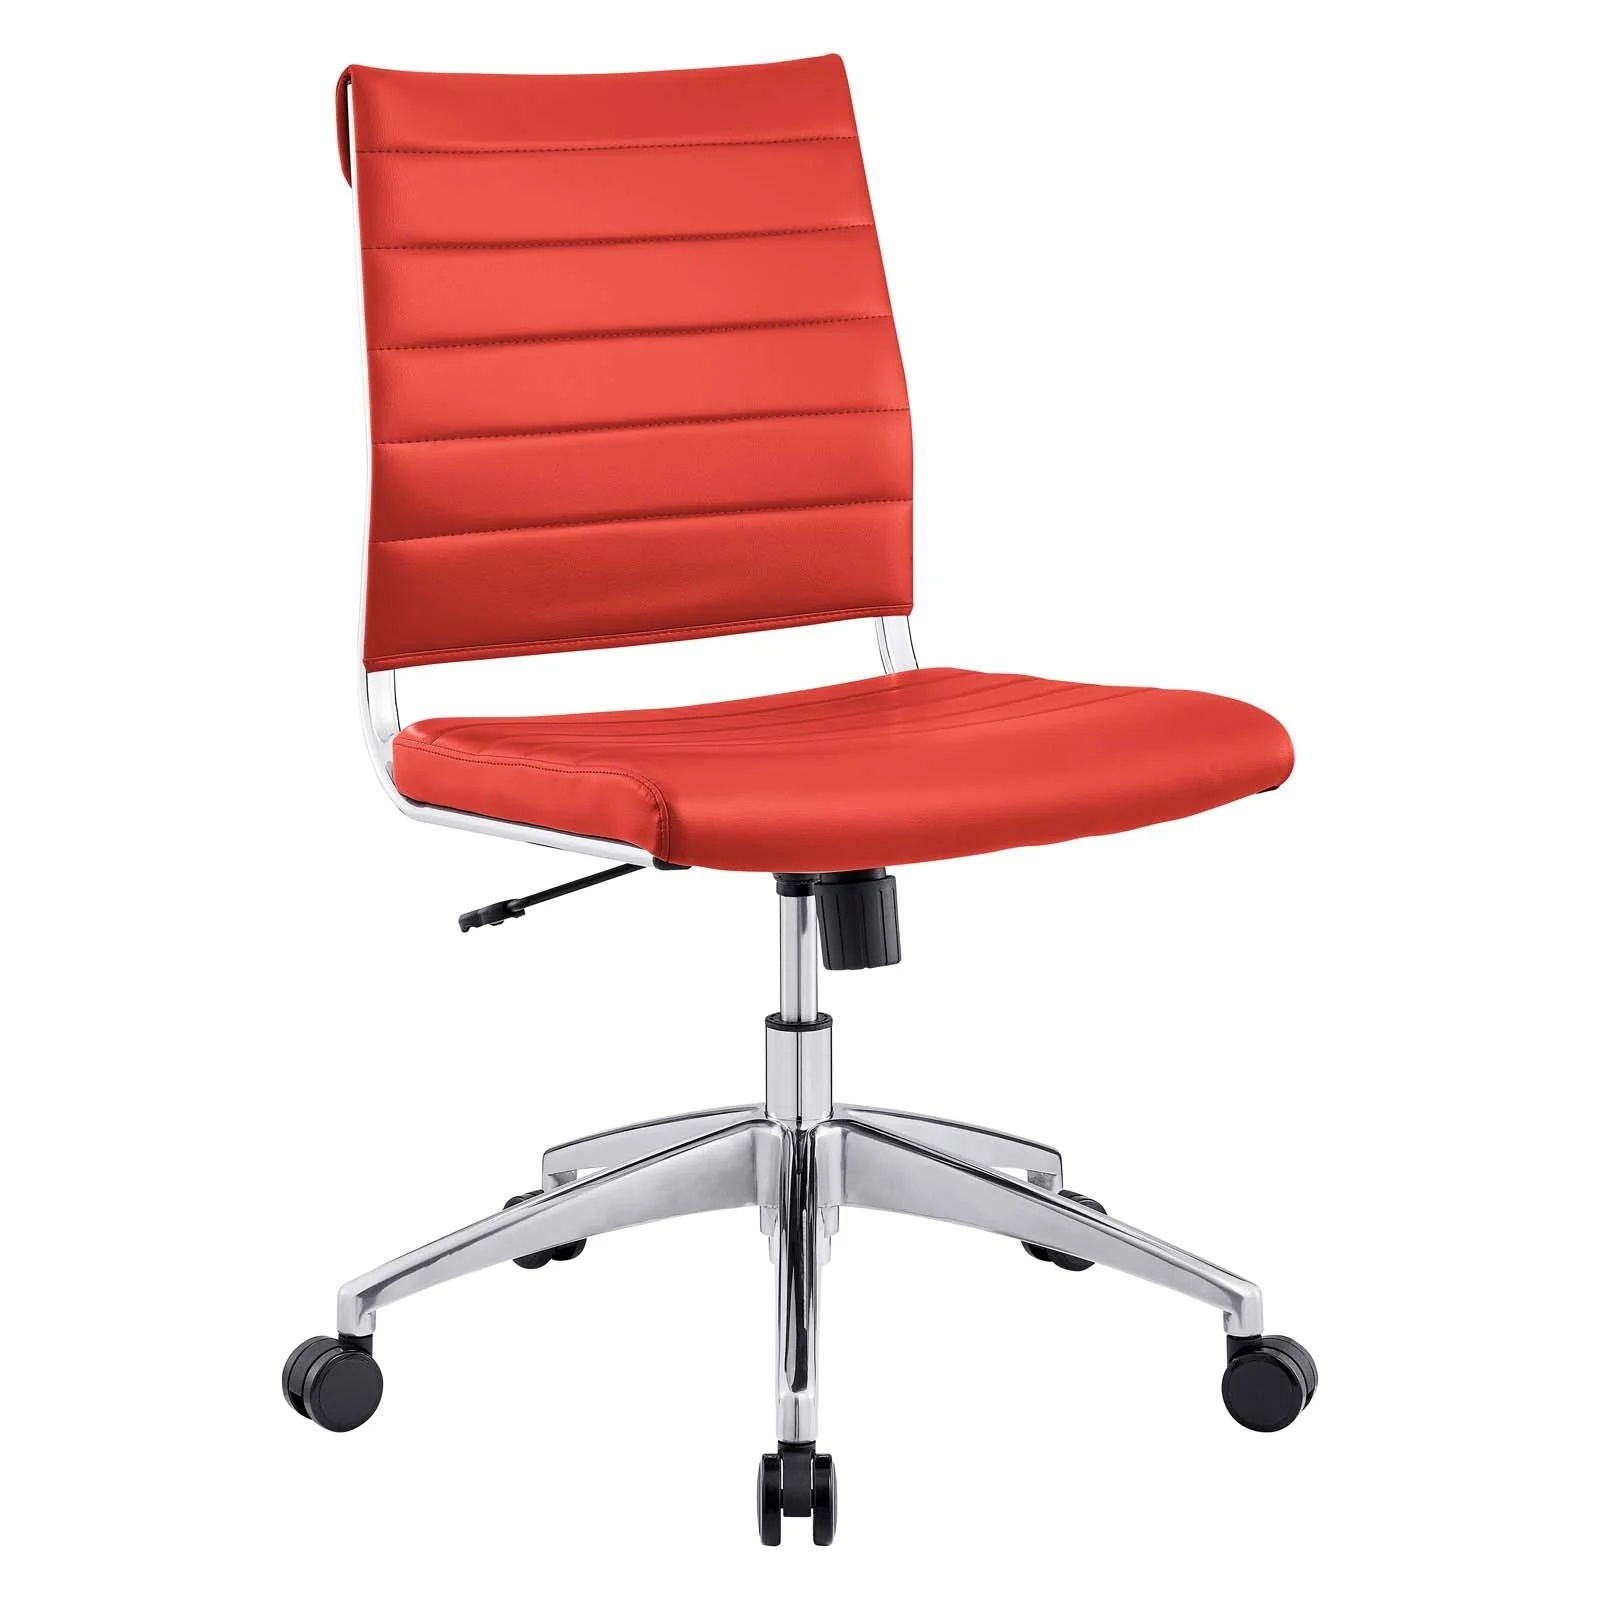 Armless Mid Back Office Chair in Red